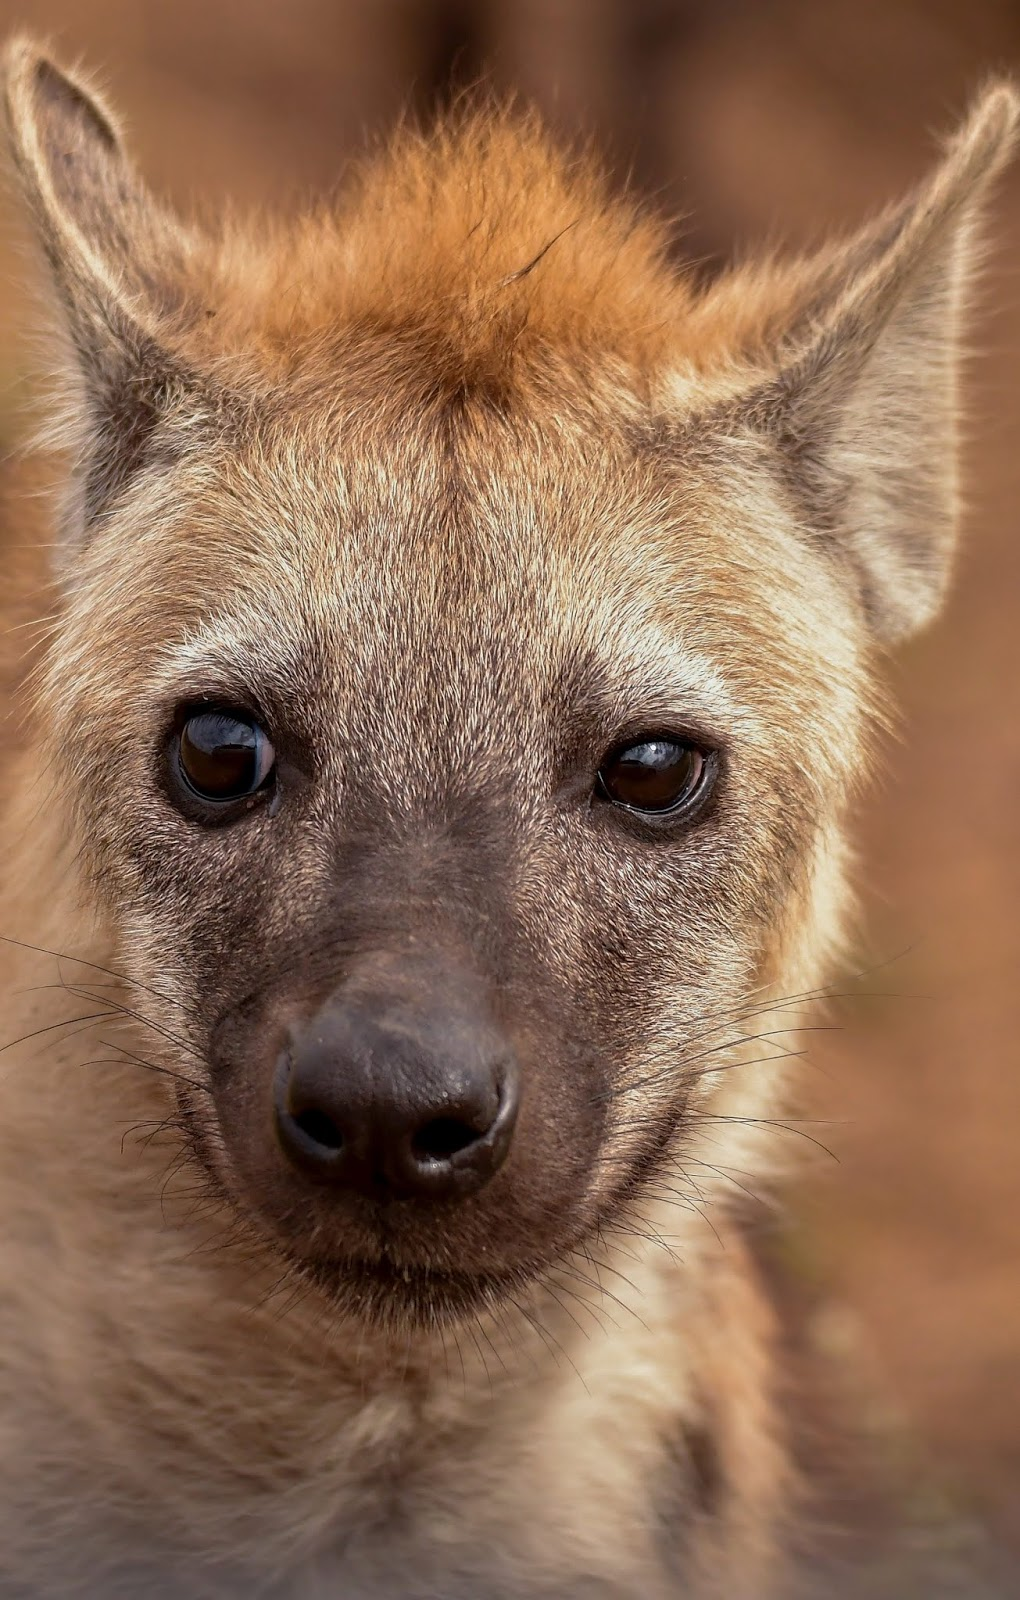 A young hyena.